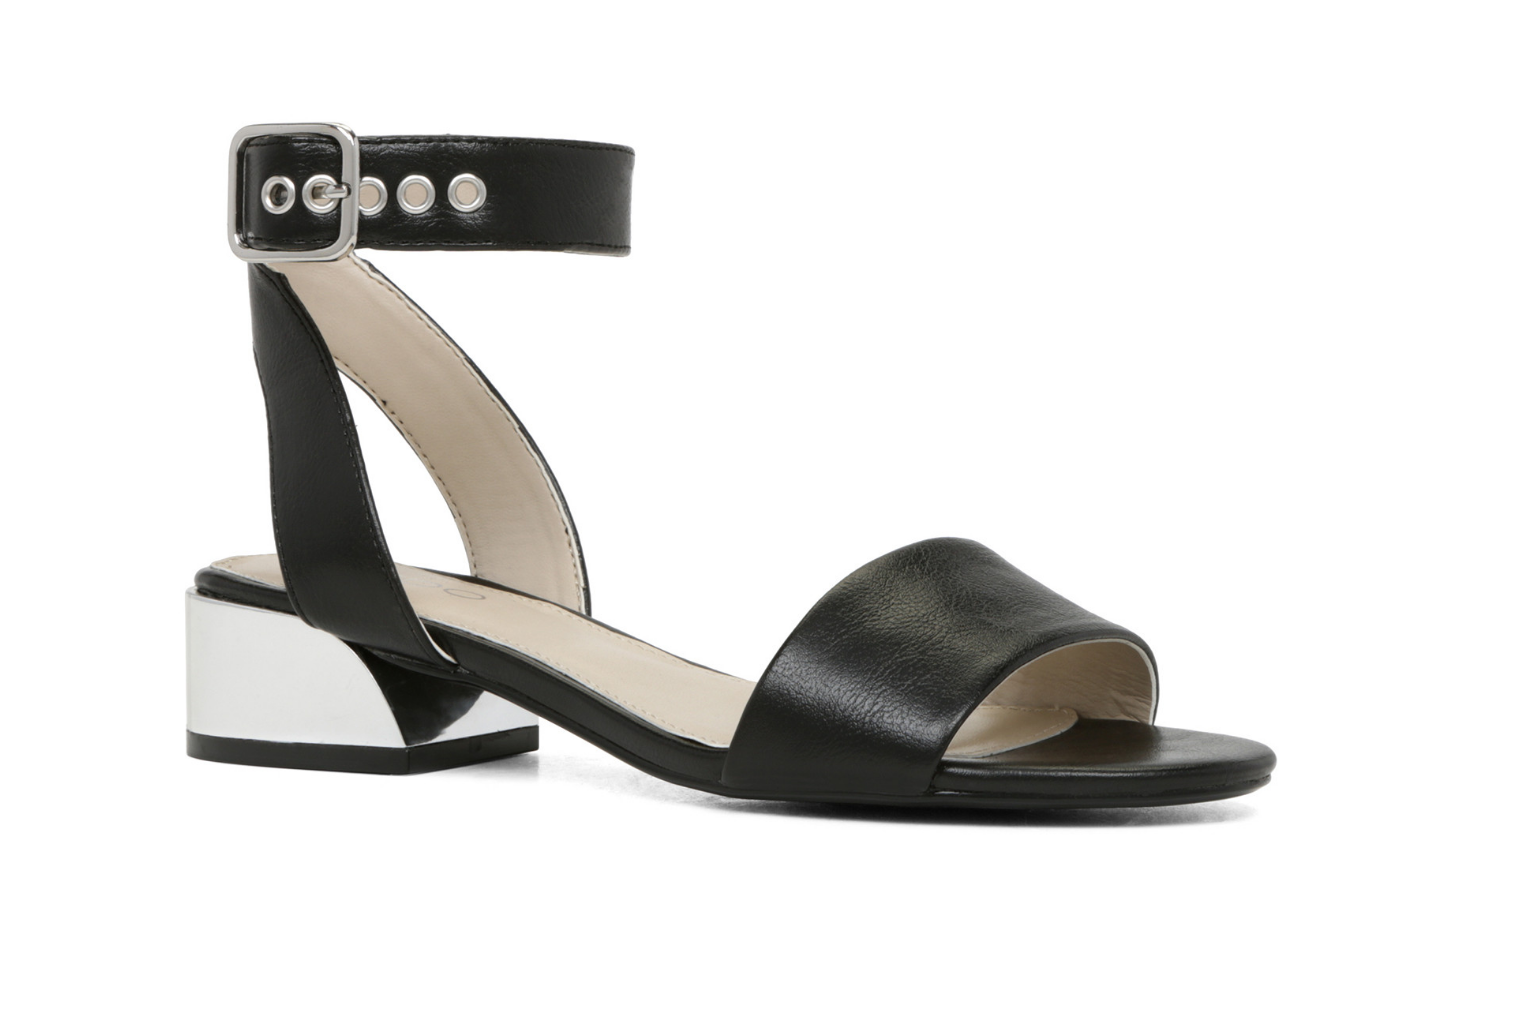 A Simpler Sandal Silhouette Comes In The Form Of Aldo S Riana Classic Black That Will See You Through This Season And Into Many More To